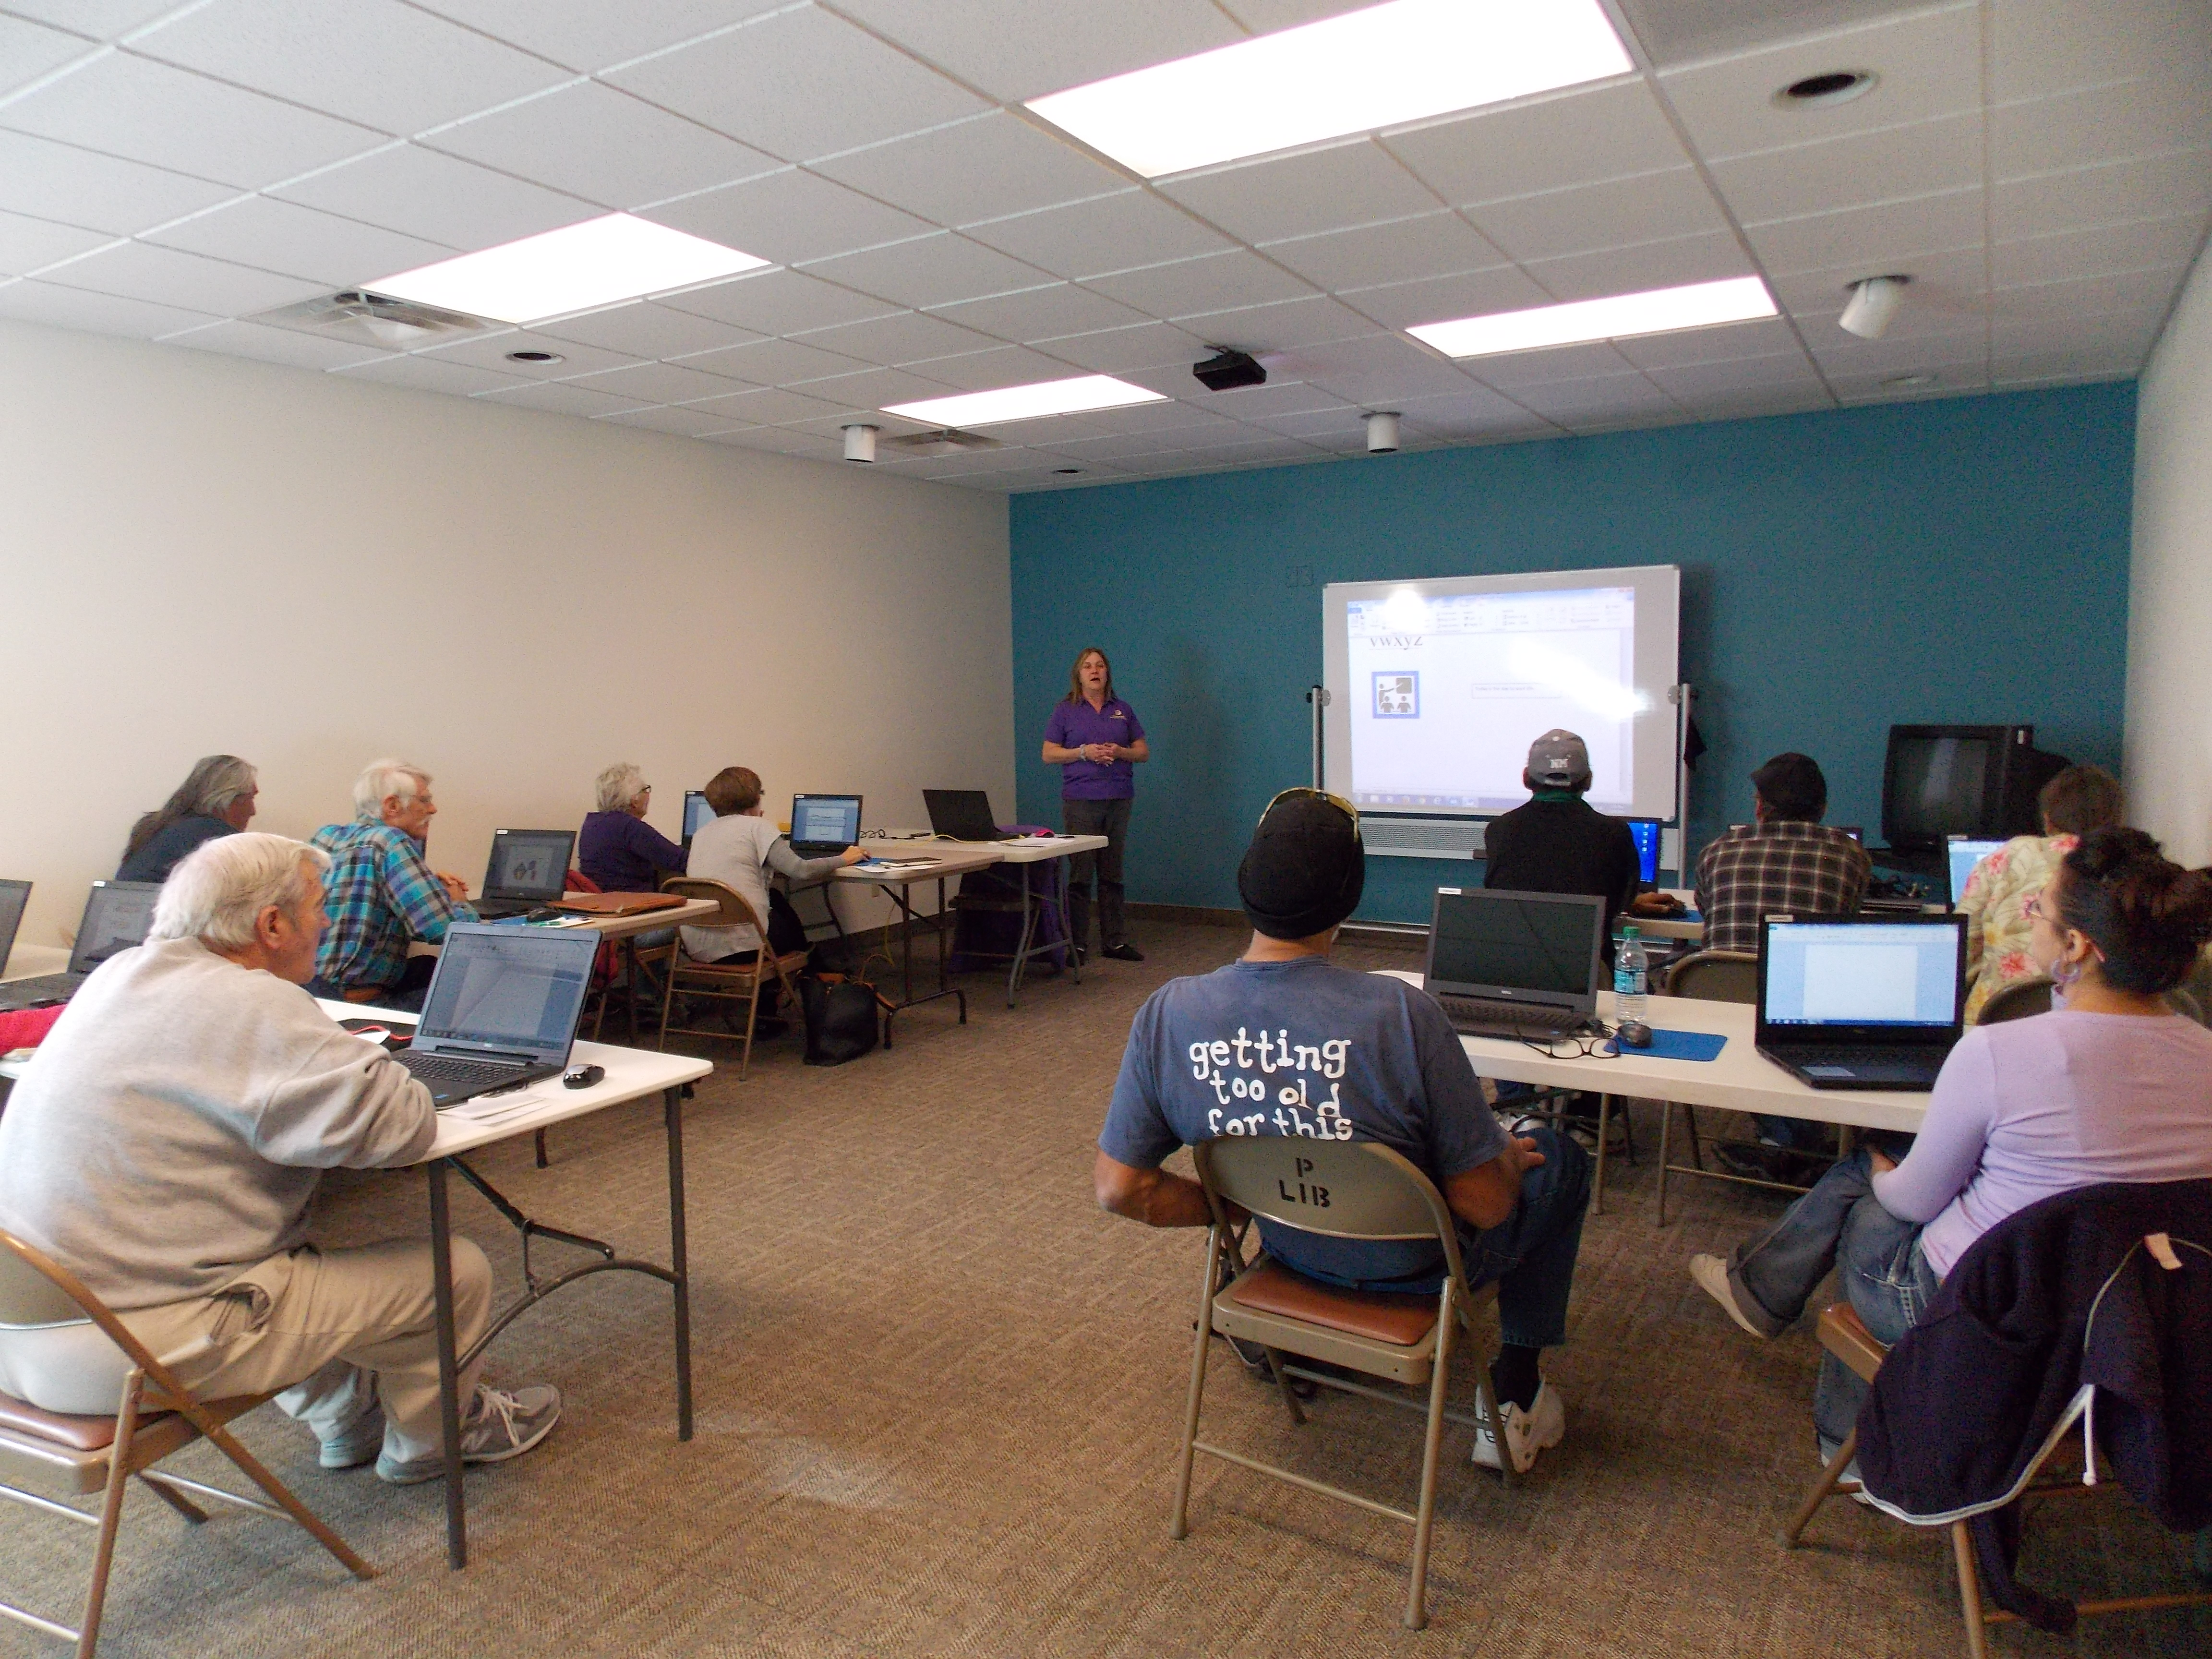 Technology workshop at the library led by Adult Education Services.